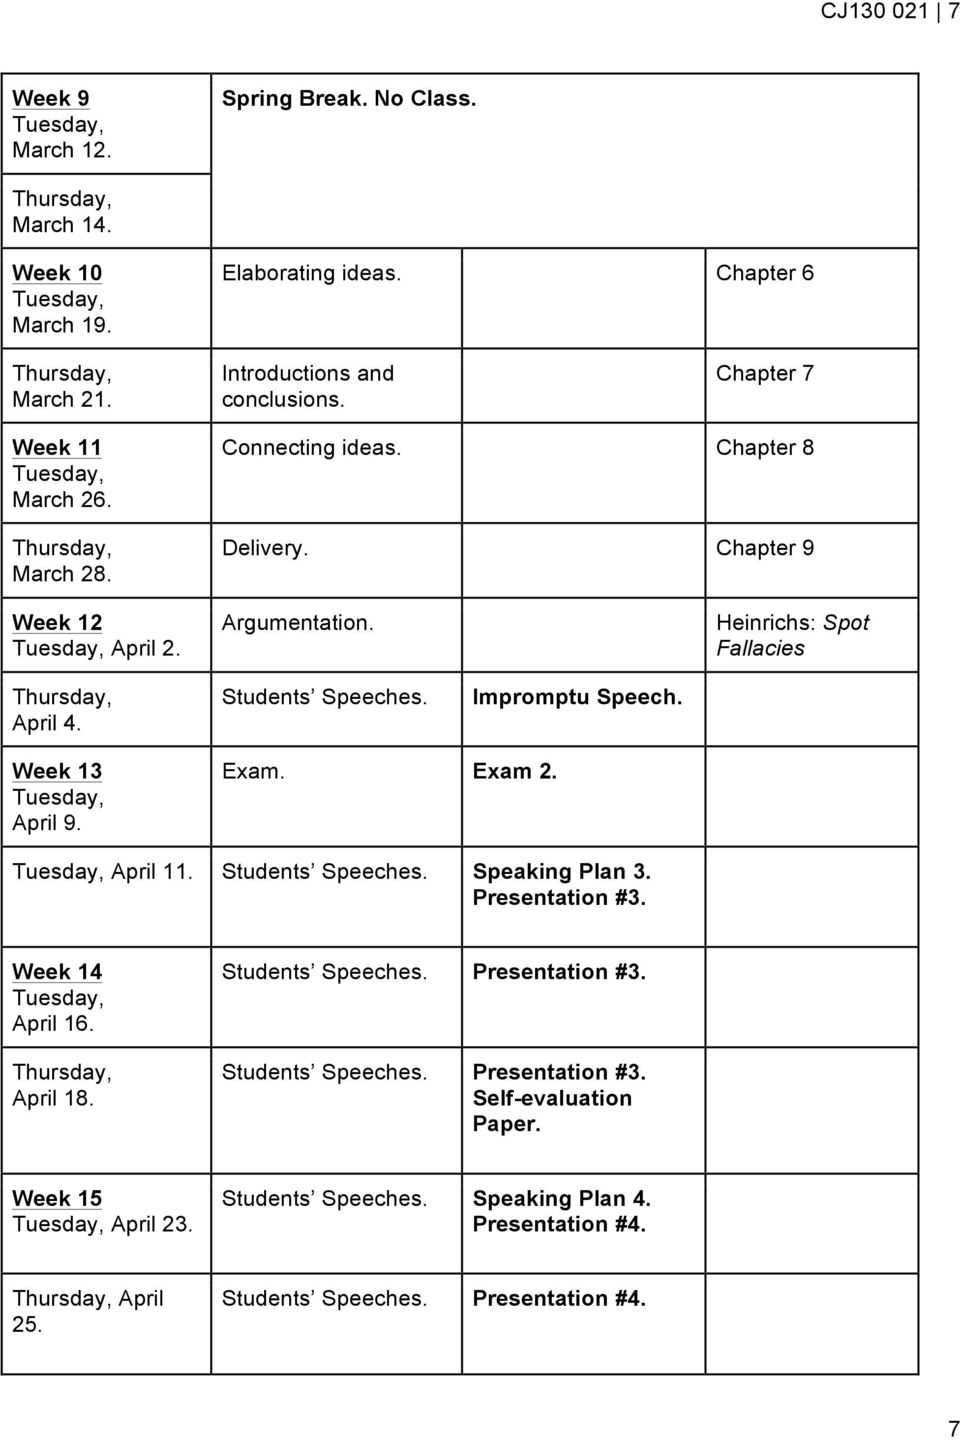 Students Speeches. Impromptu Speech. Week 13 April 9. Exam. Exam 2. April 11. Students Speeches. Speaking Plan 3. Presentation #3. Week 14 April 16. April 18.